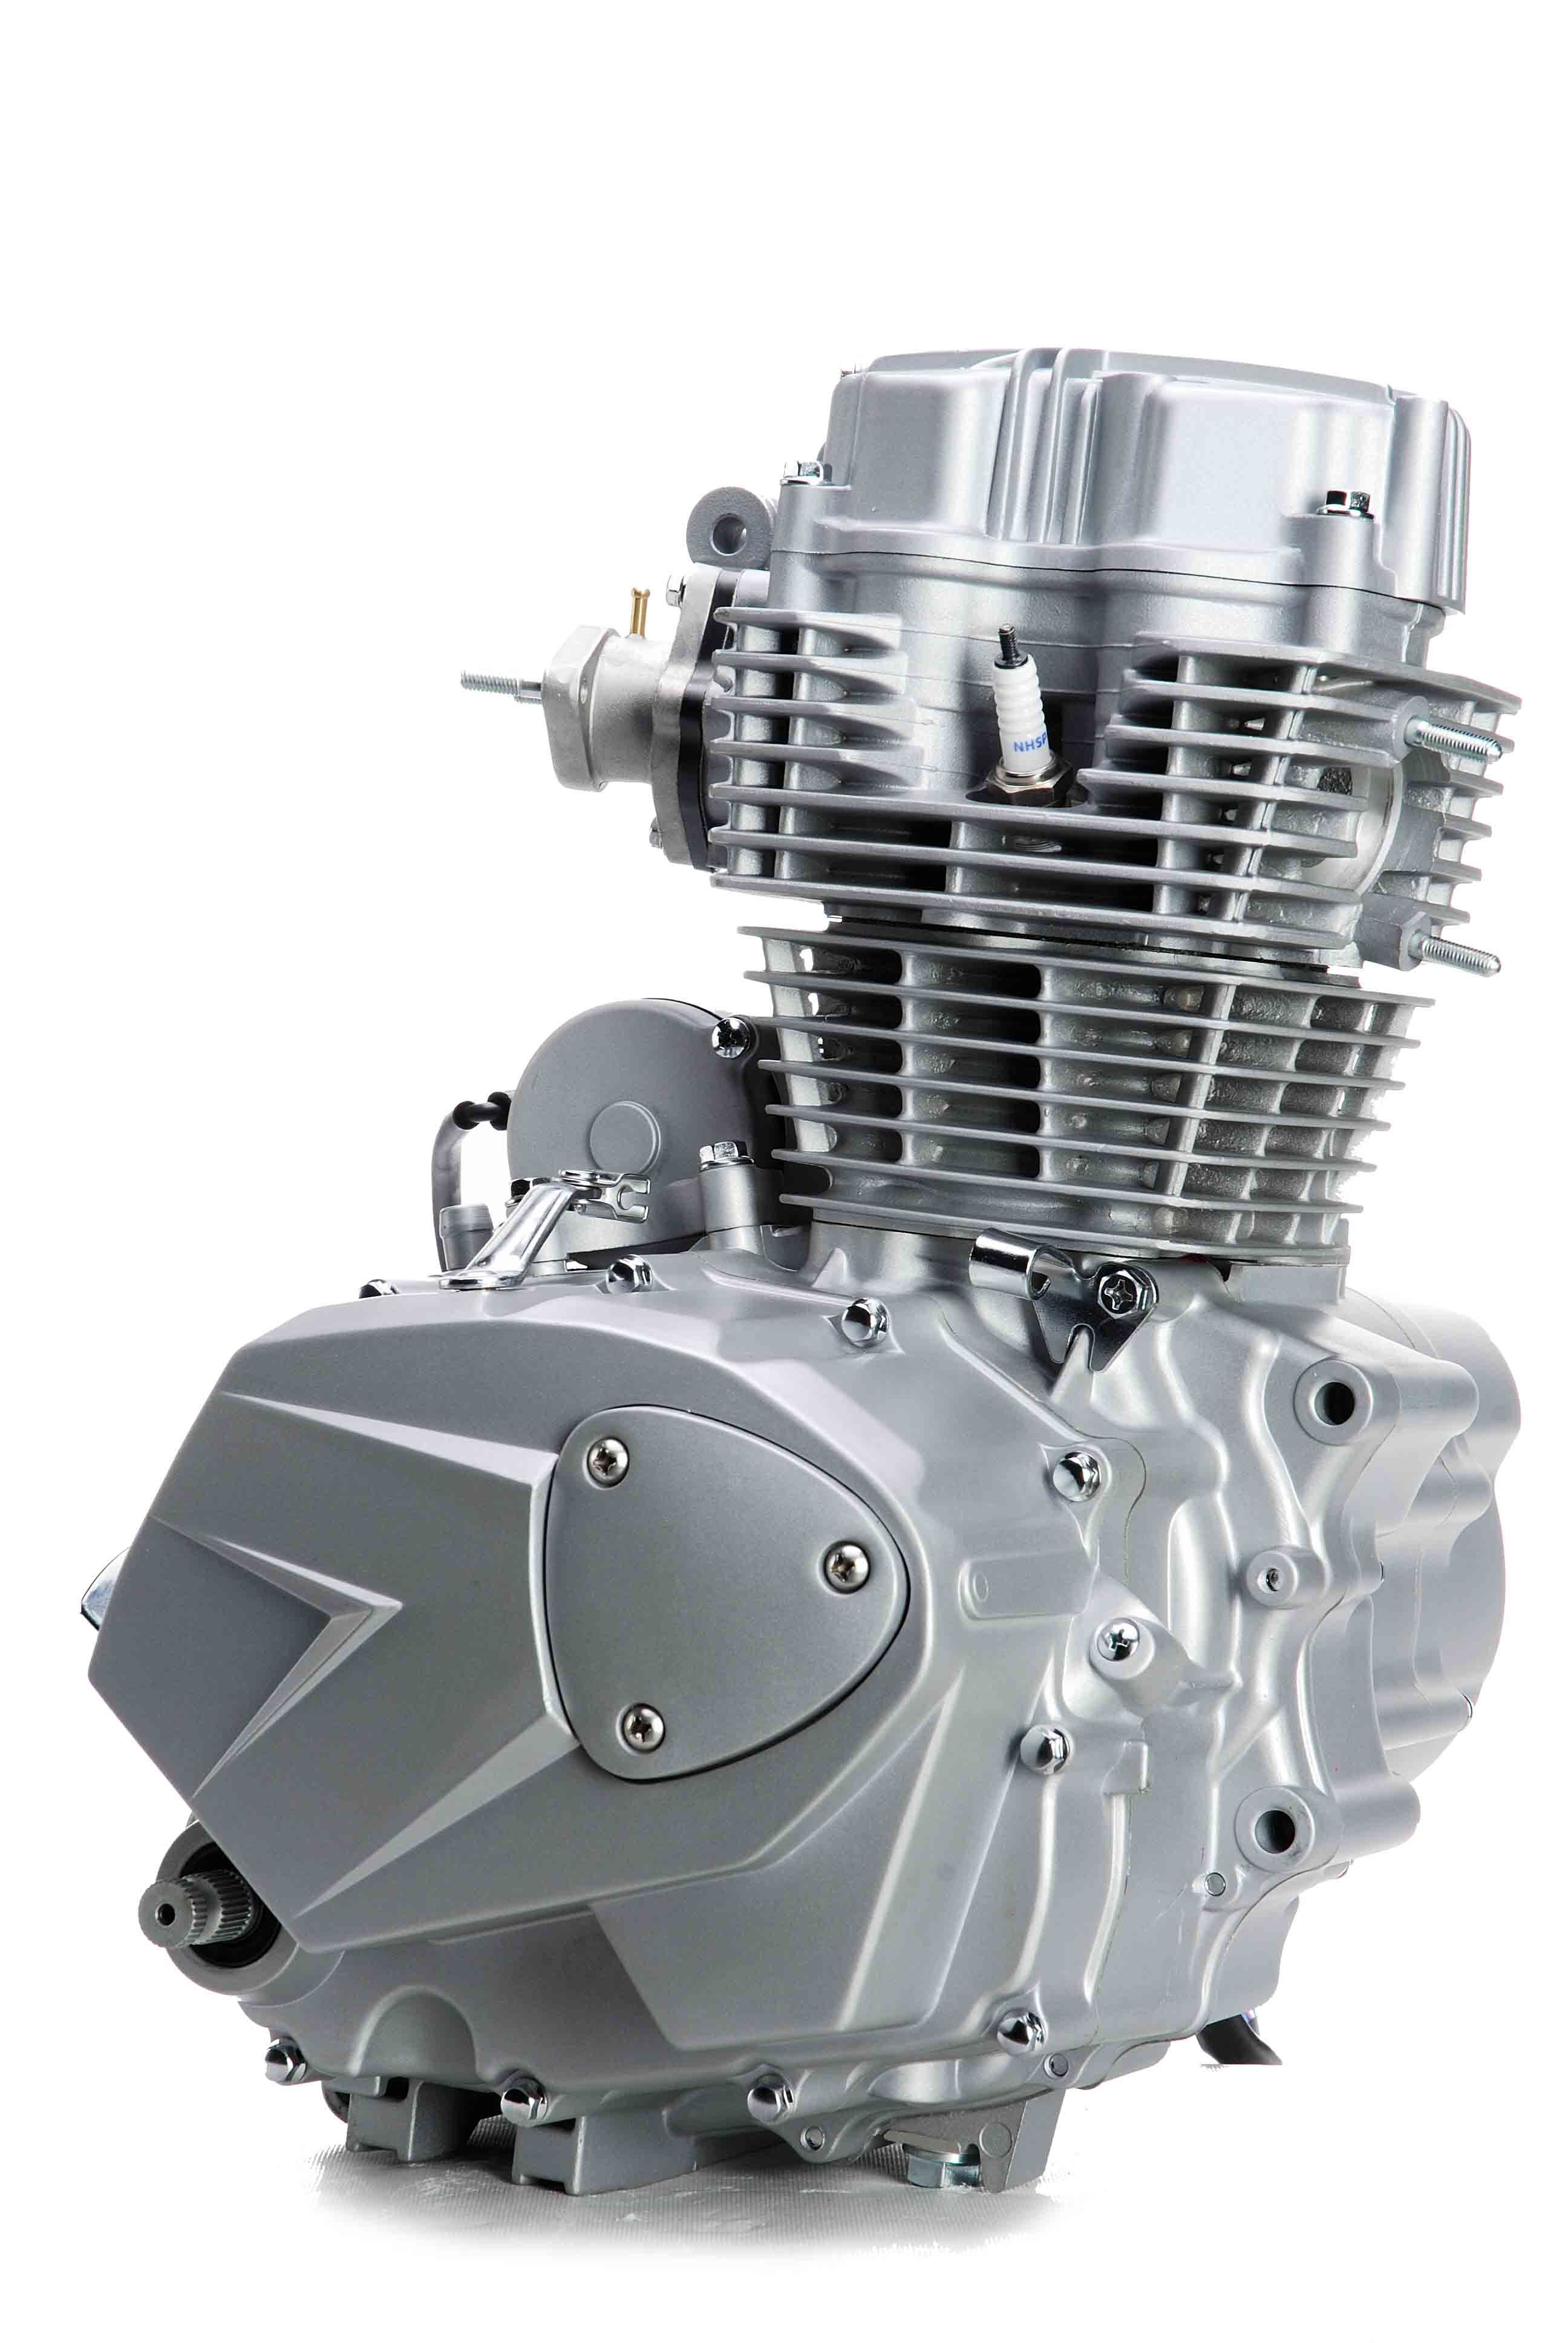 125cc, 150cc Motorcycle Engine